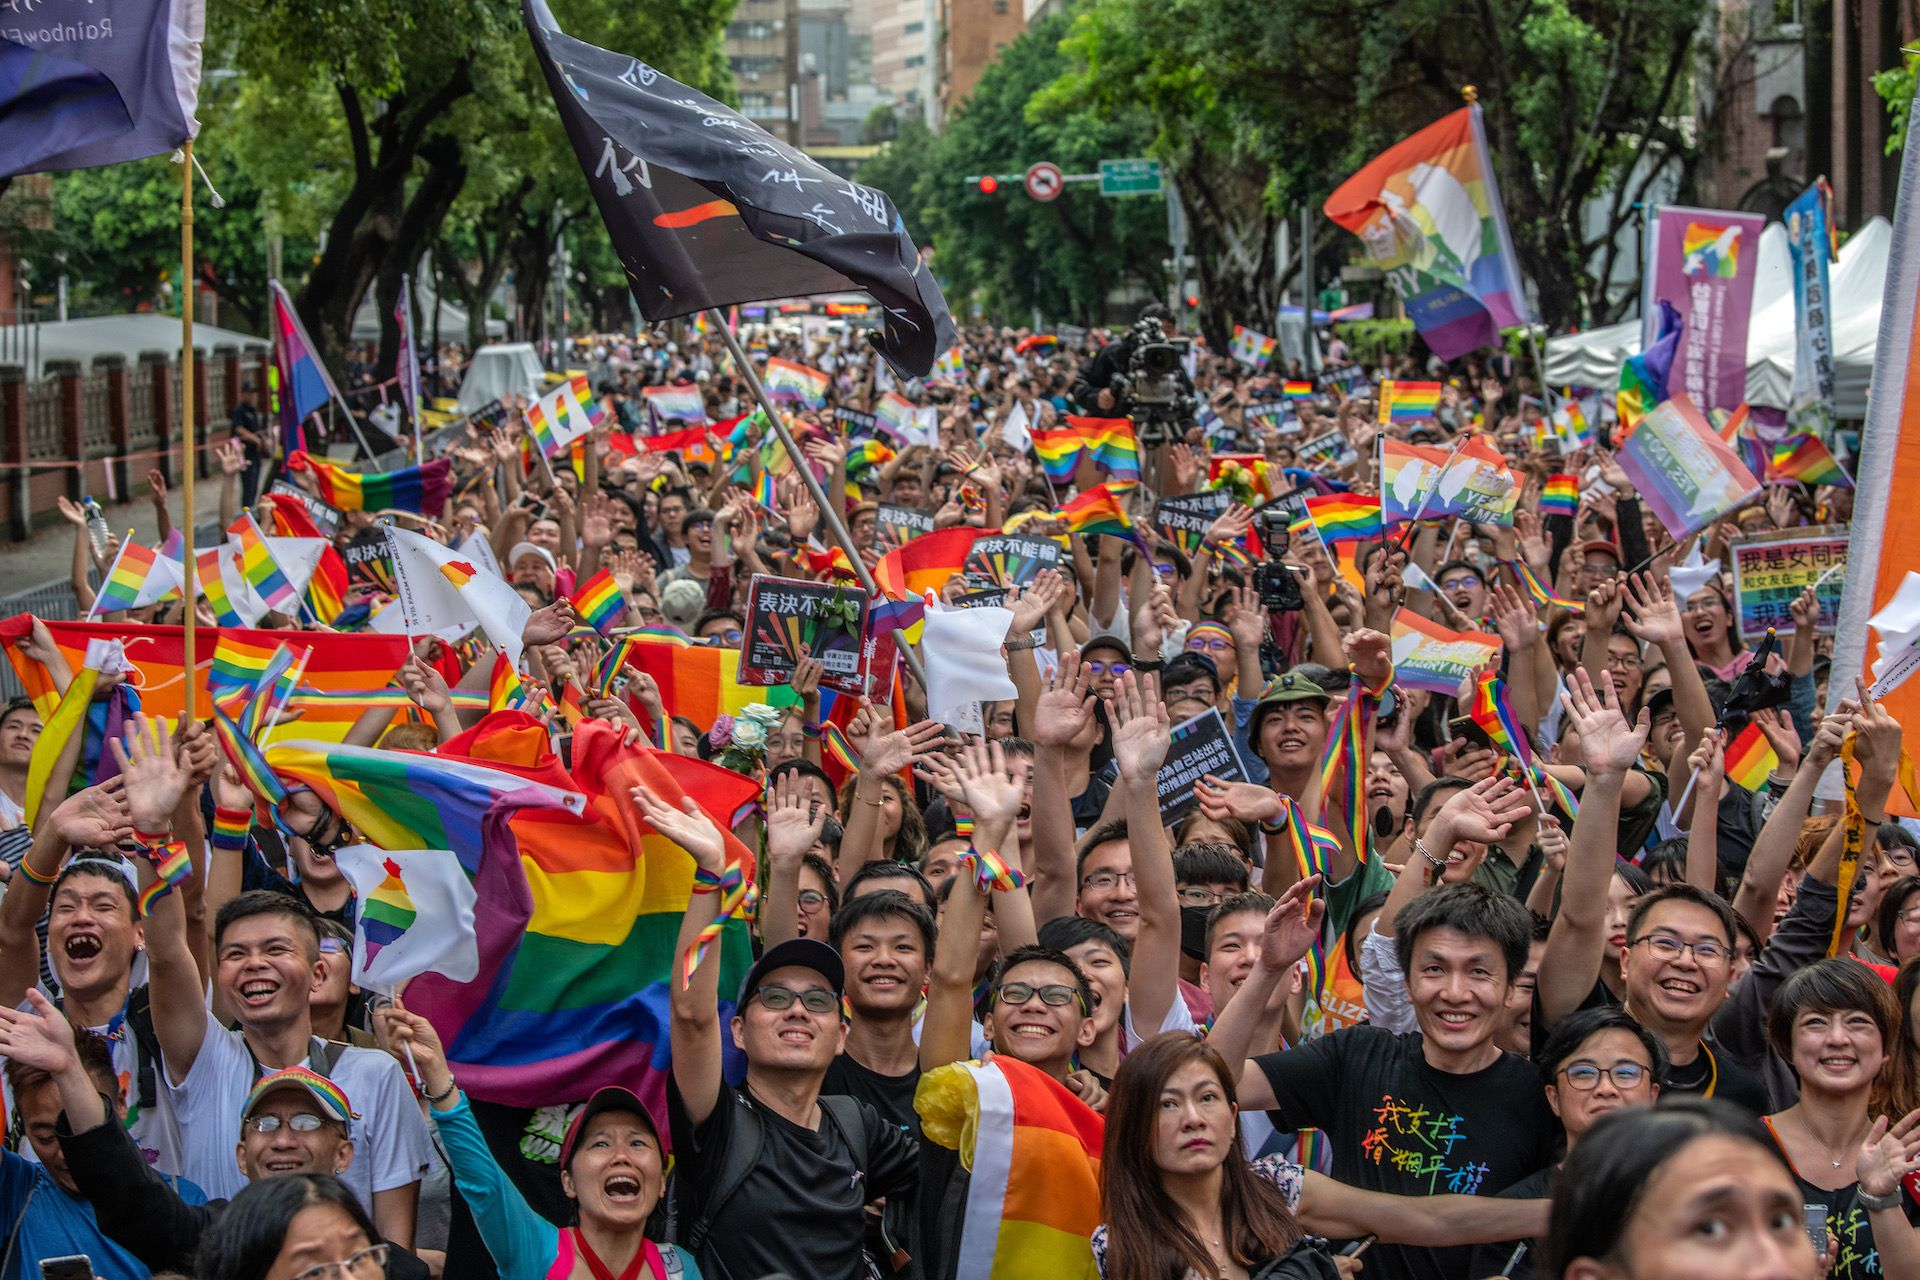 Taiwan's lgbt communities face backlash to marriage victory